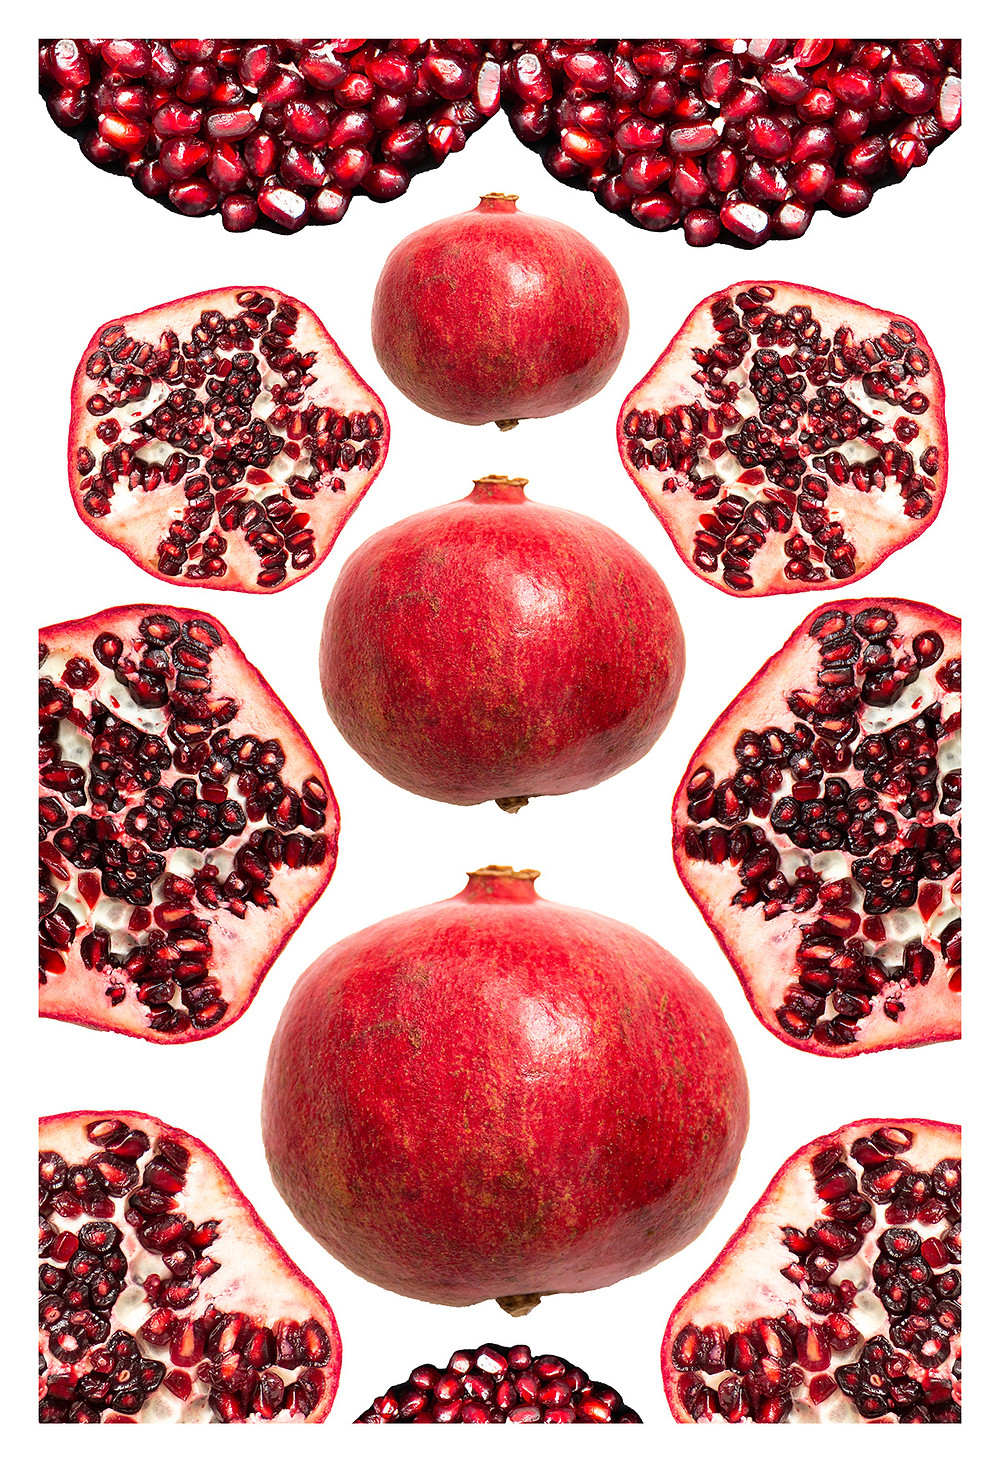 Pomegranates   Prints will be ran in quantities 10 in 13x19 inches. All prints will be signed and numbered.  Made with fine art, archival exhibition-quality luster paper.  300 gsm double weight.